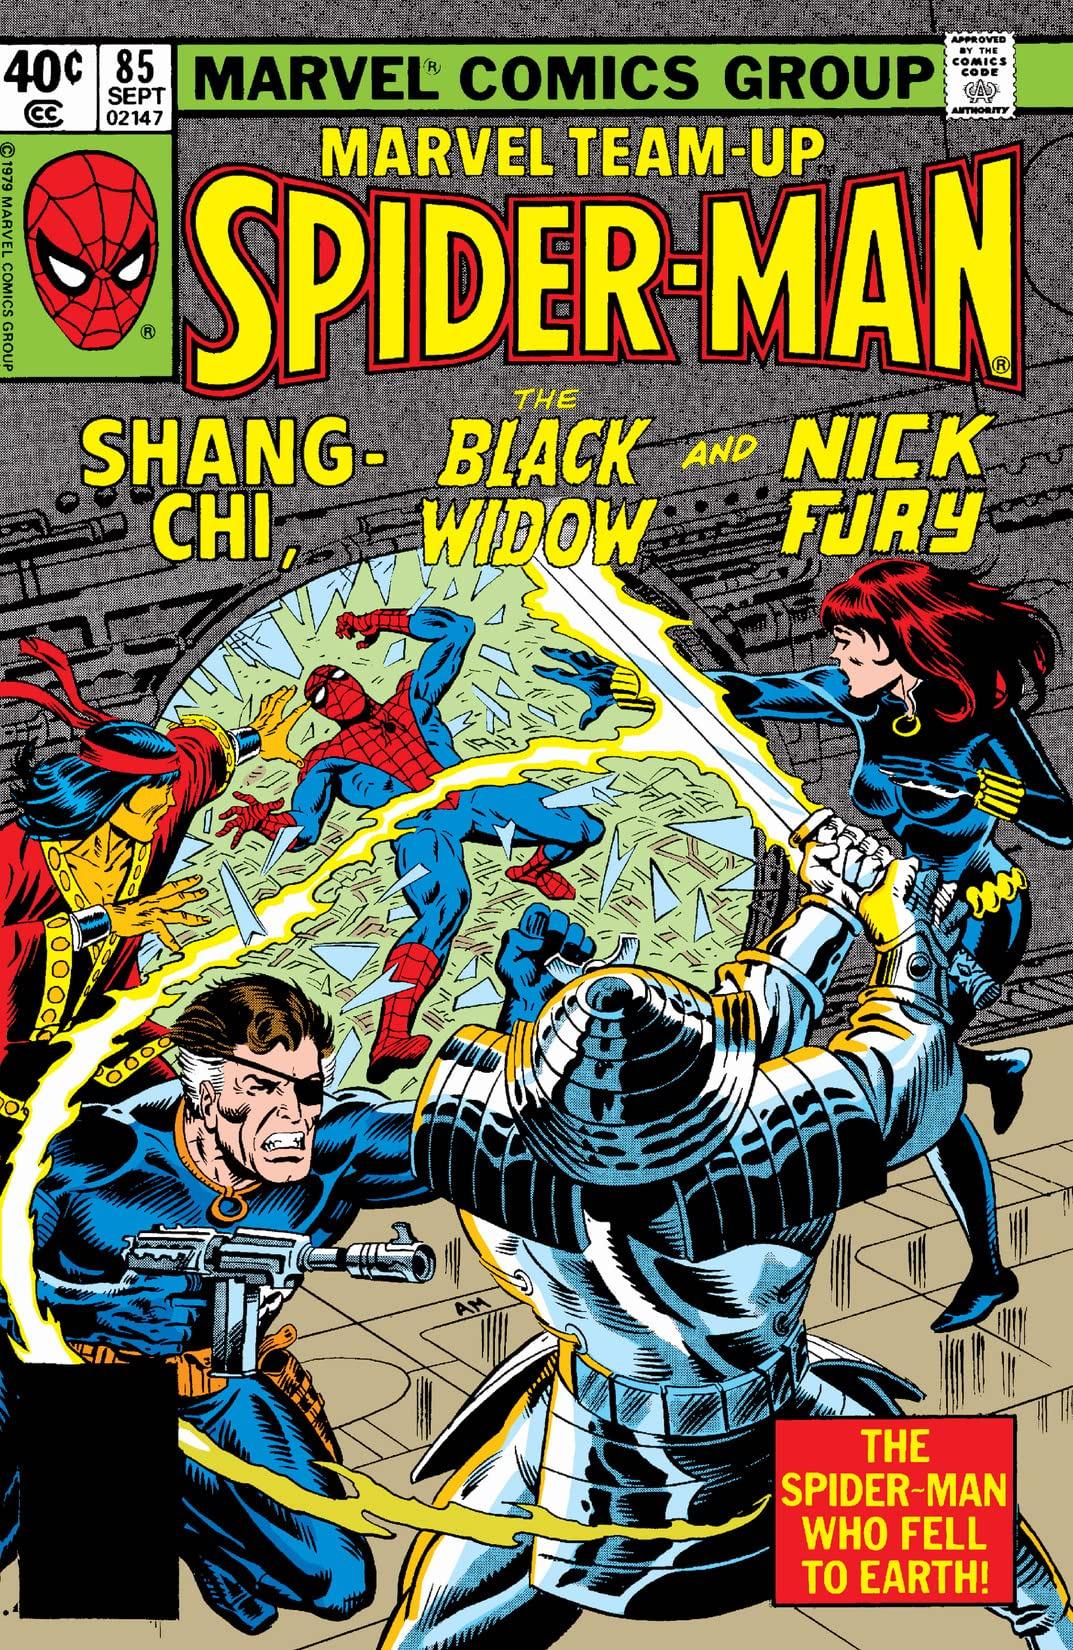 Marvel Team-Up (1972-1985) #85